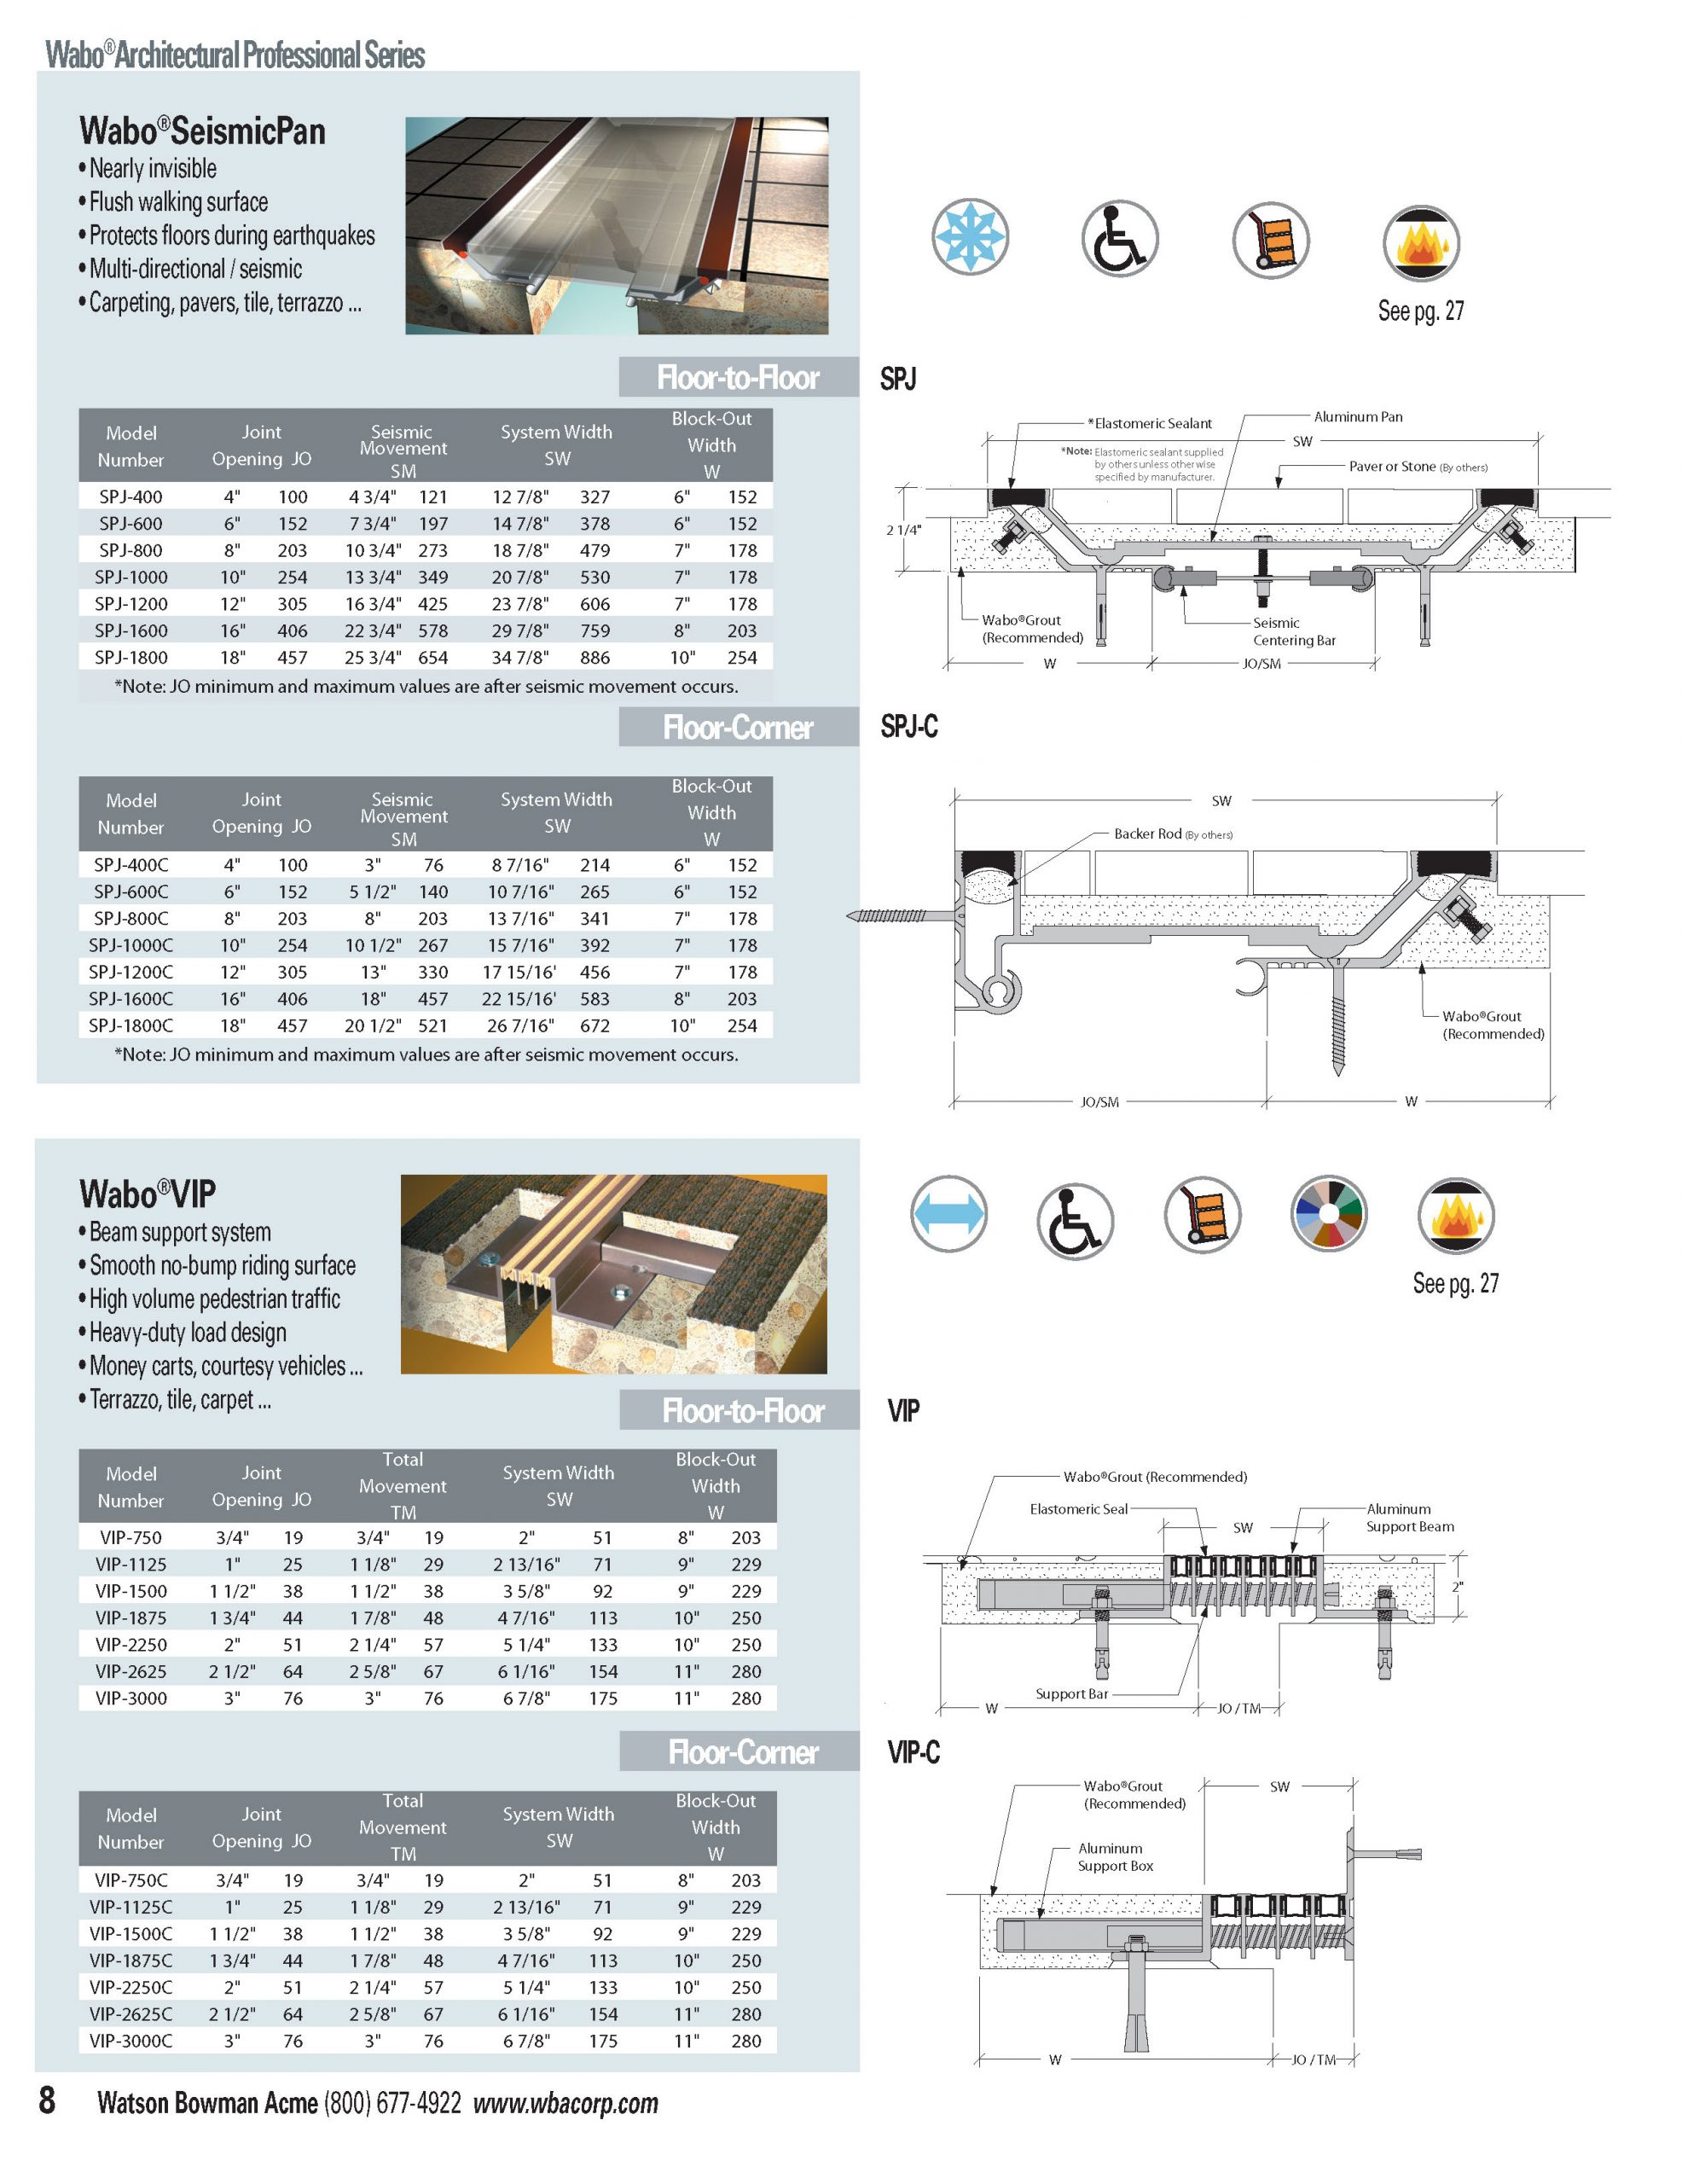 Technical brochure layout